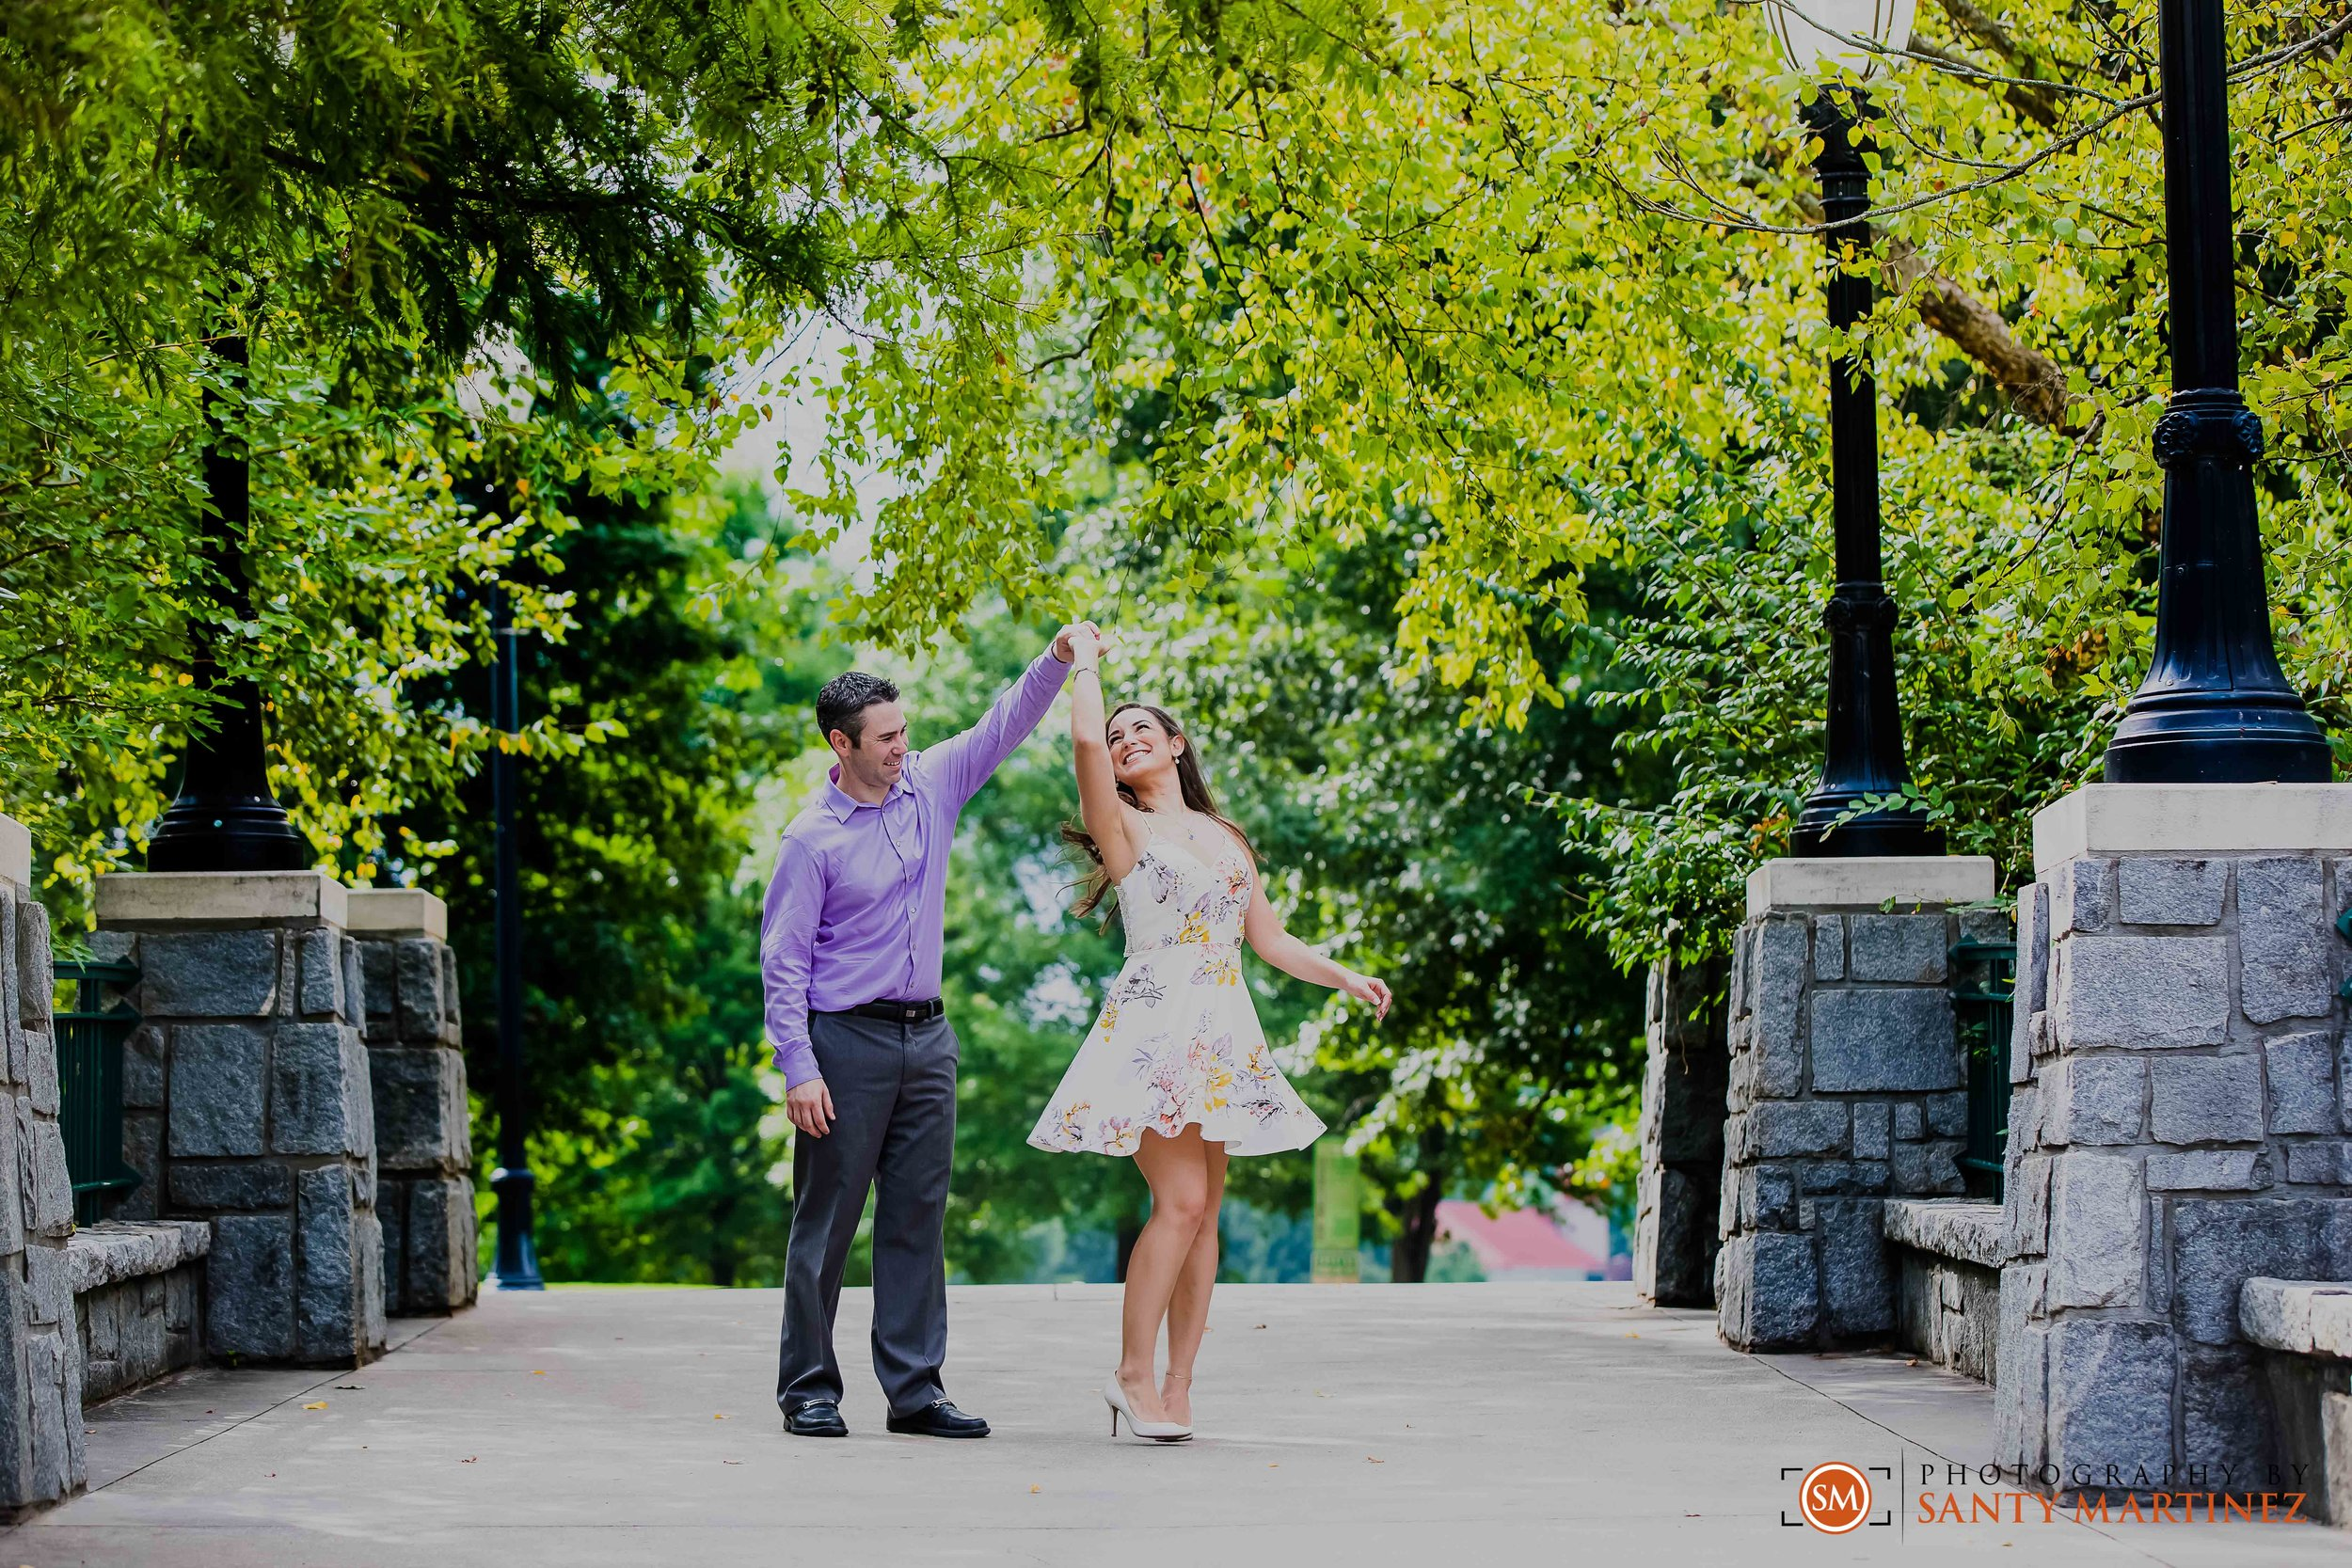 Engagement Session Piedmont Park - Santy Martinez Photography-6.jpg